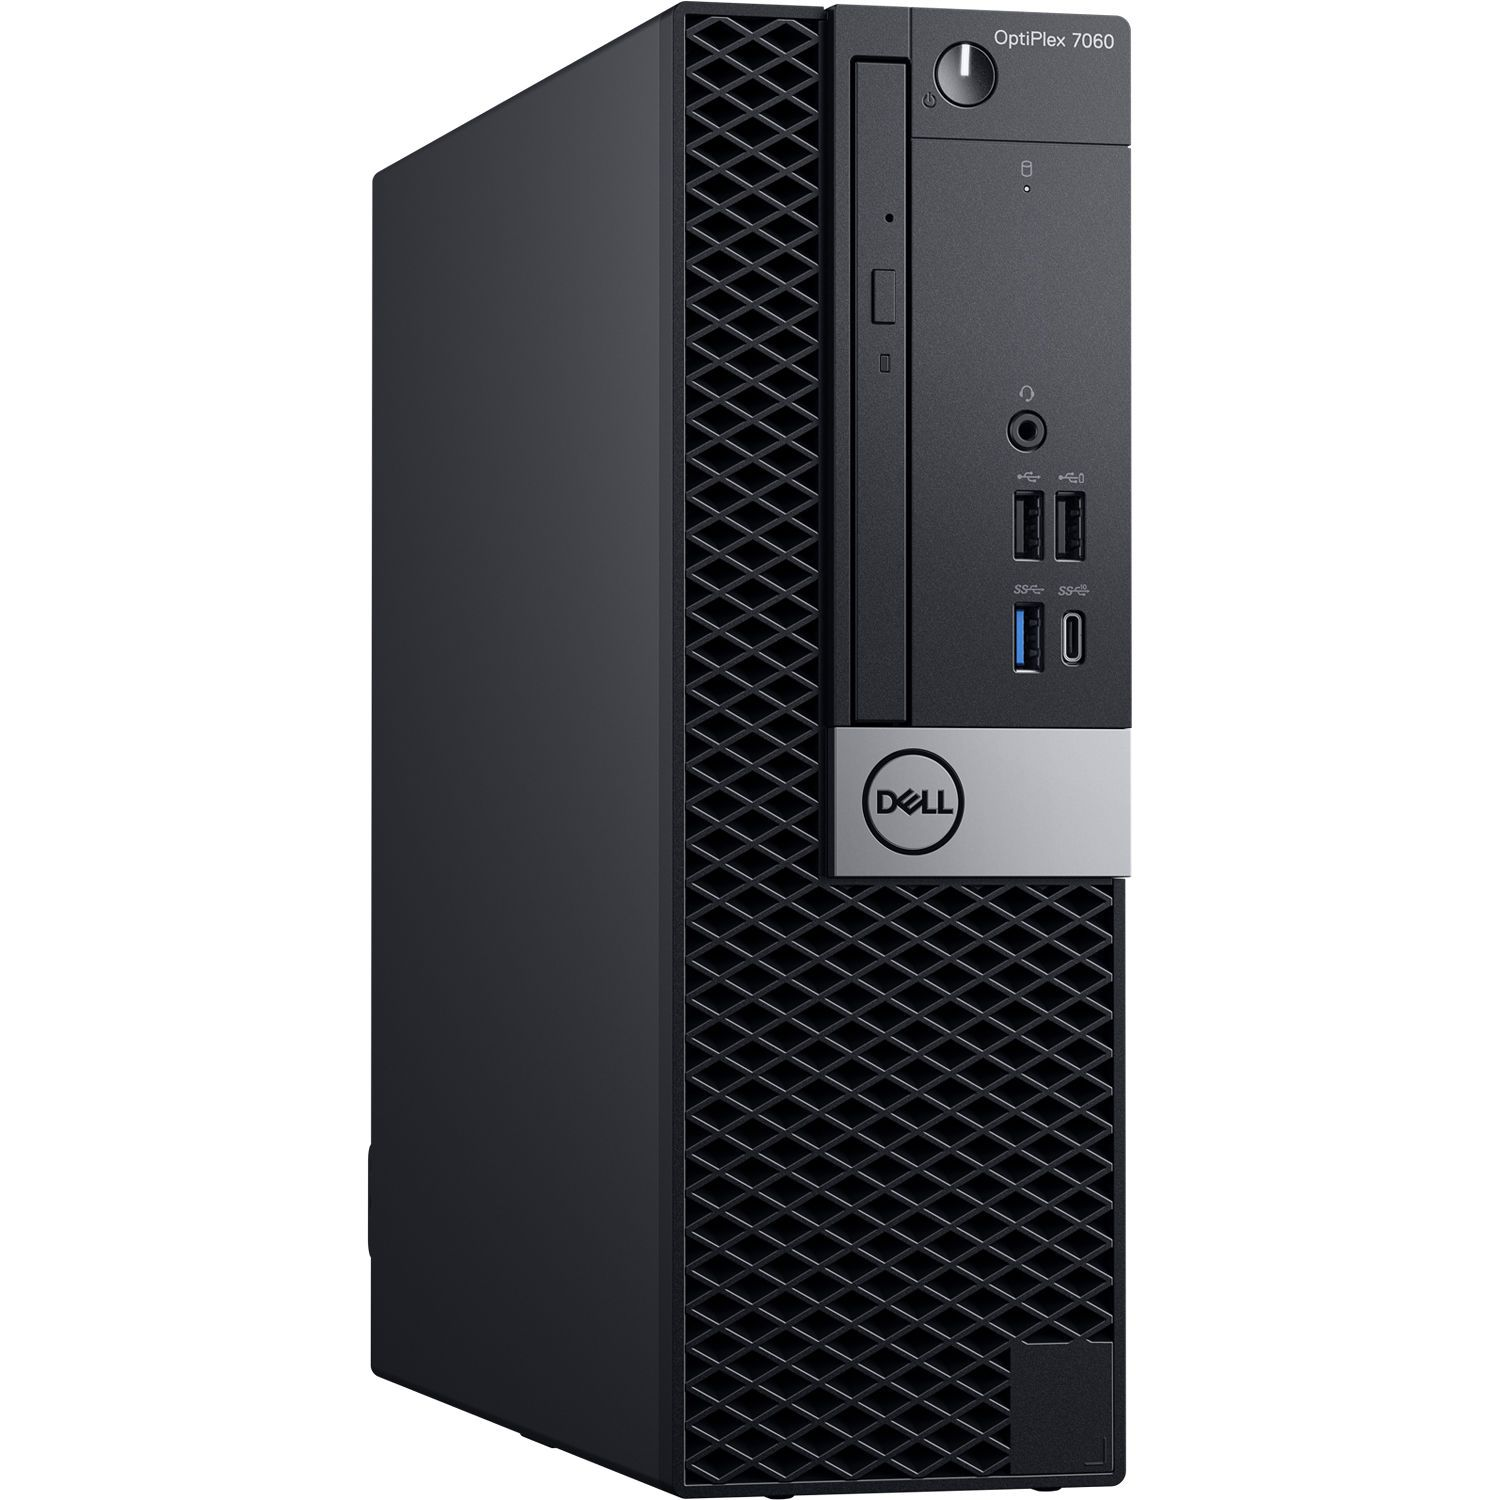 Microcomputador Dell Optiplex Small 7060 i7-8700| 16GB DDR4| HD 1TB| DVD| AMD Radeon R5 430 2GB| Win 10 Pro